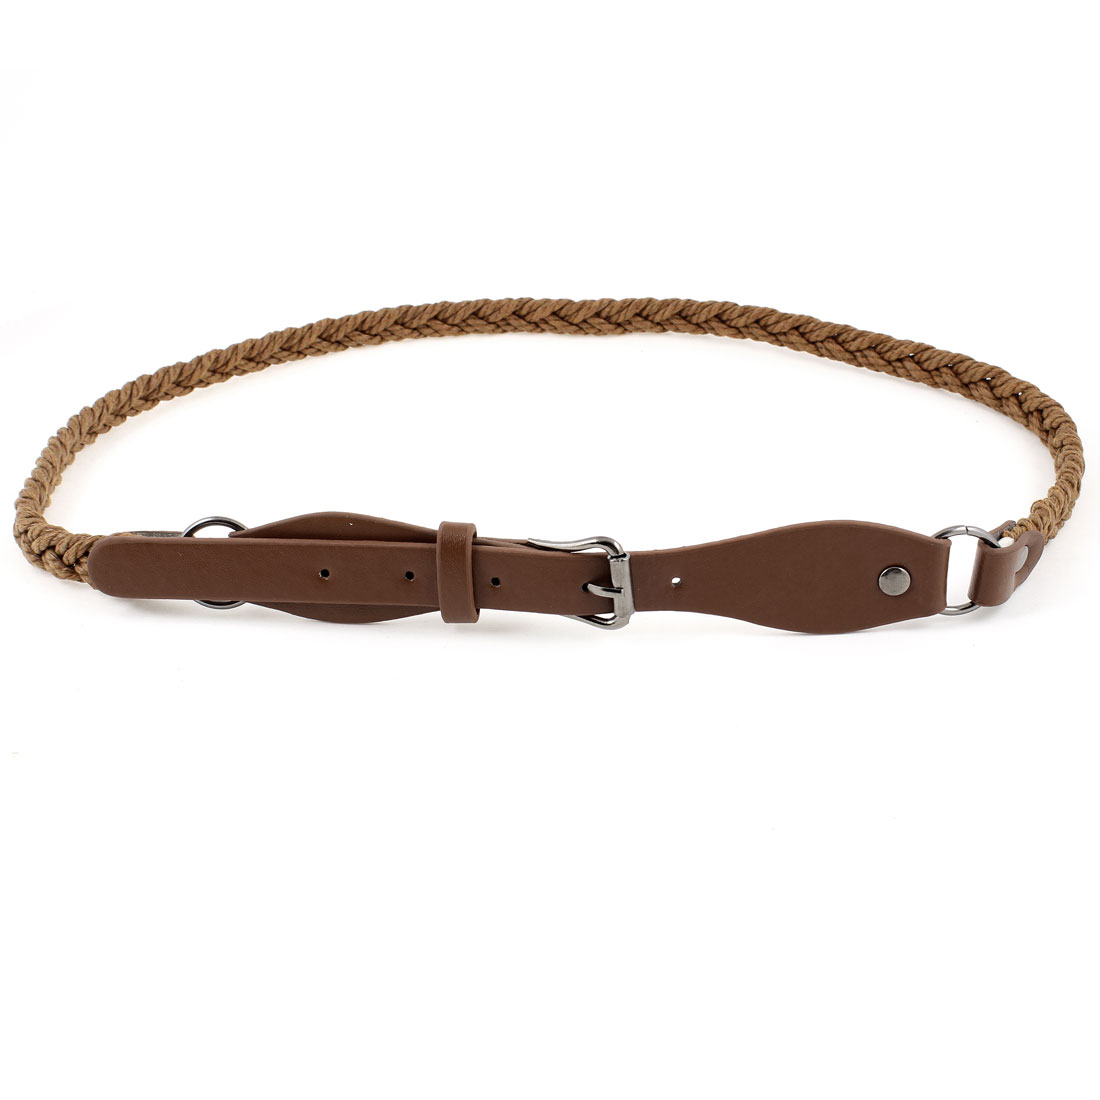 Lady Brown Faux Leather 1.8cm Wide Single Prong Buckle Double Braided Waist Belt